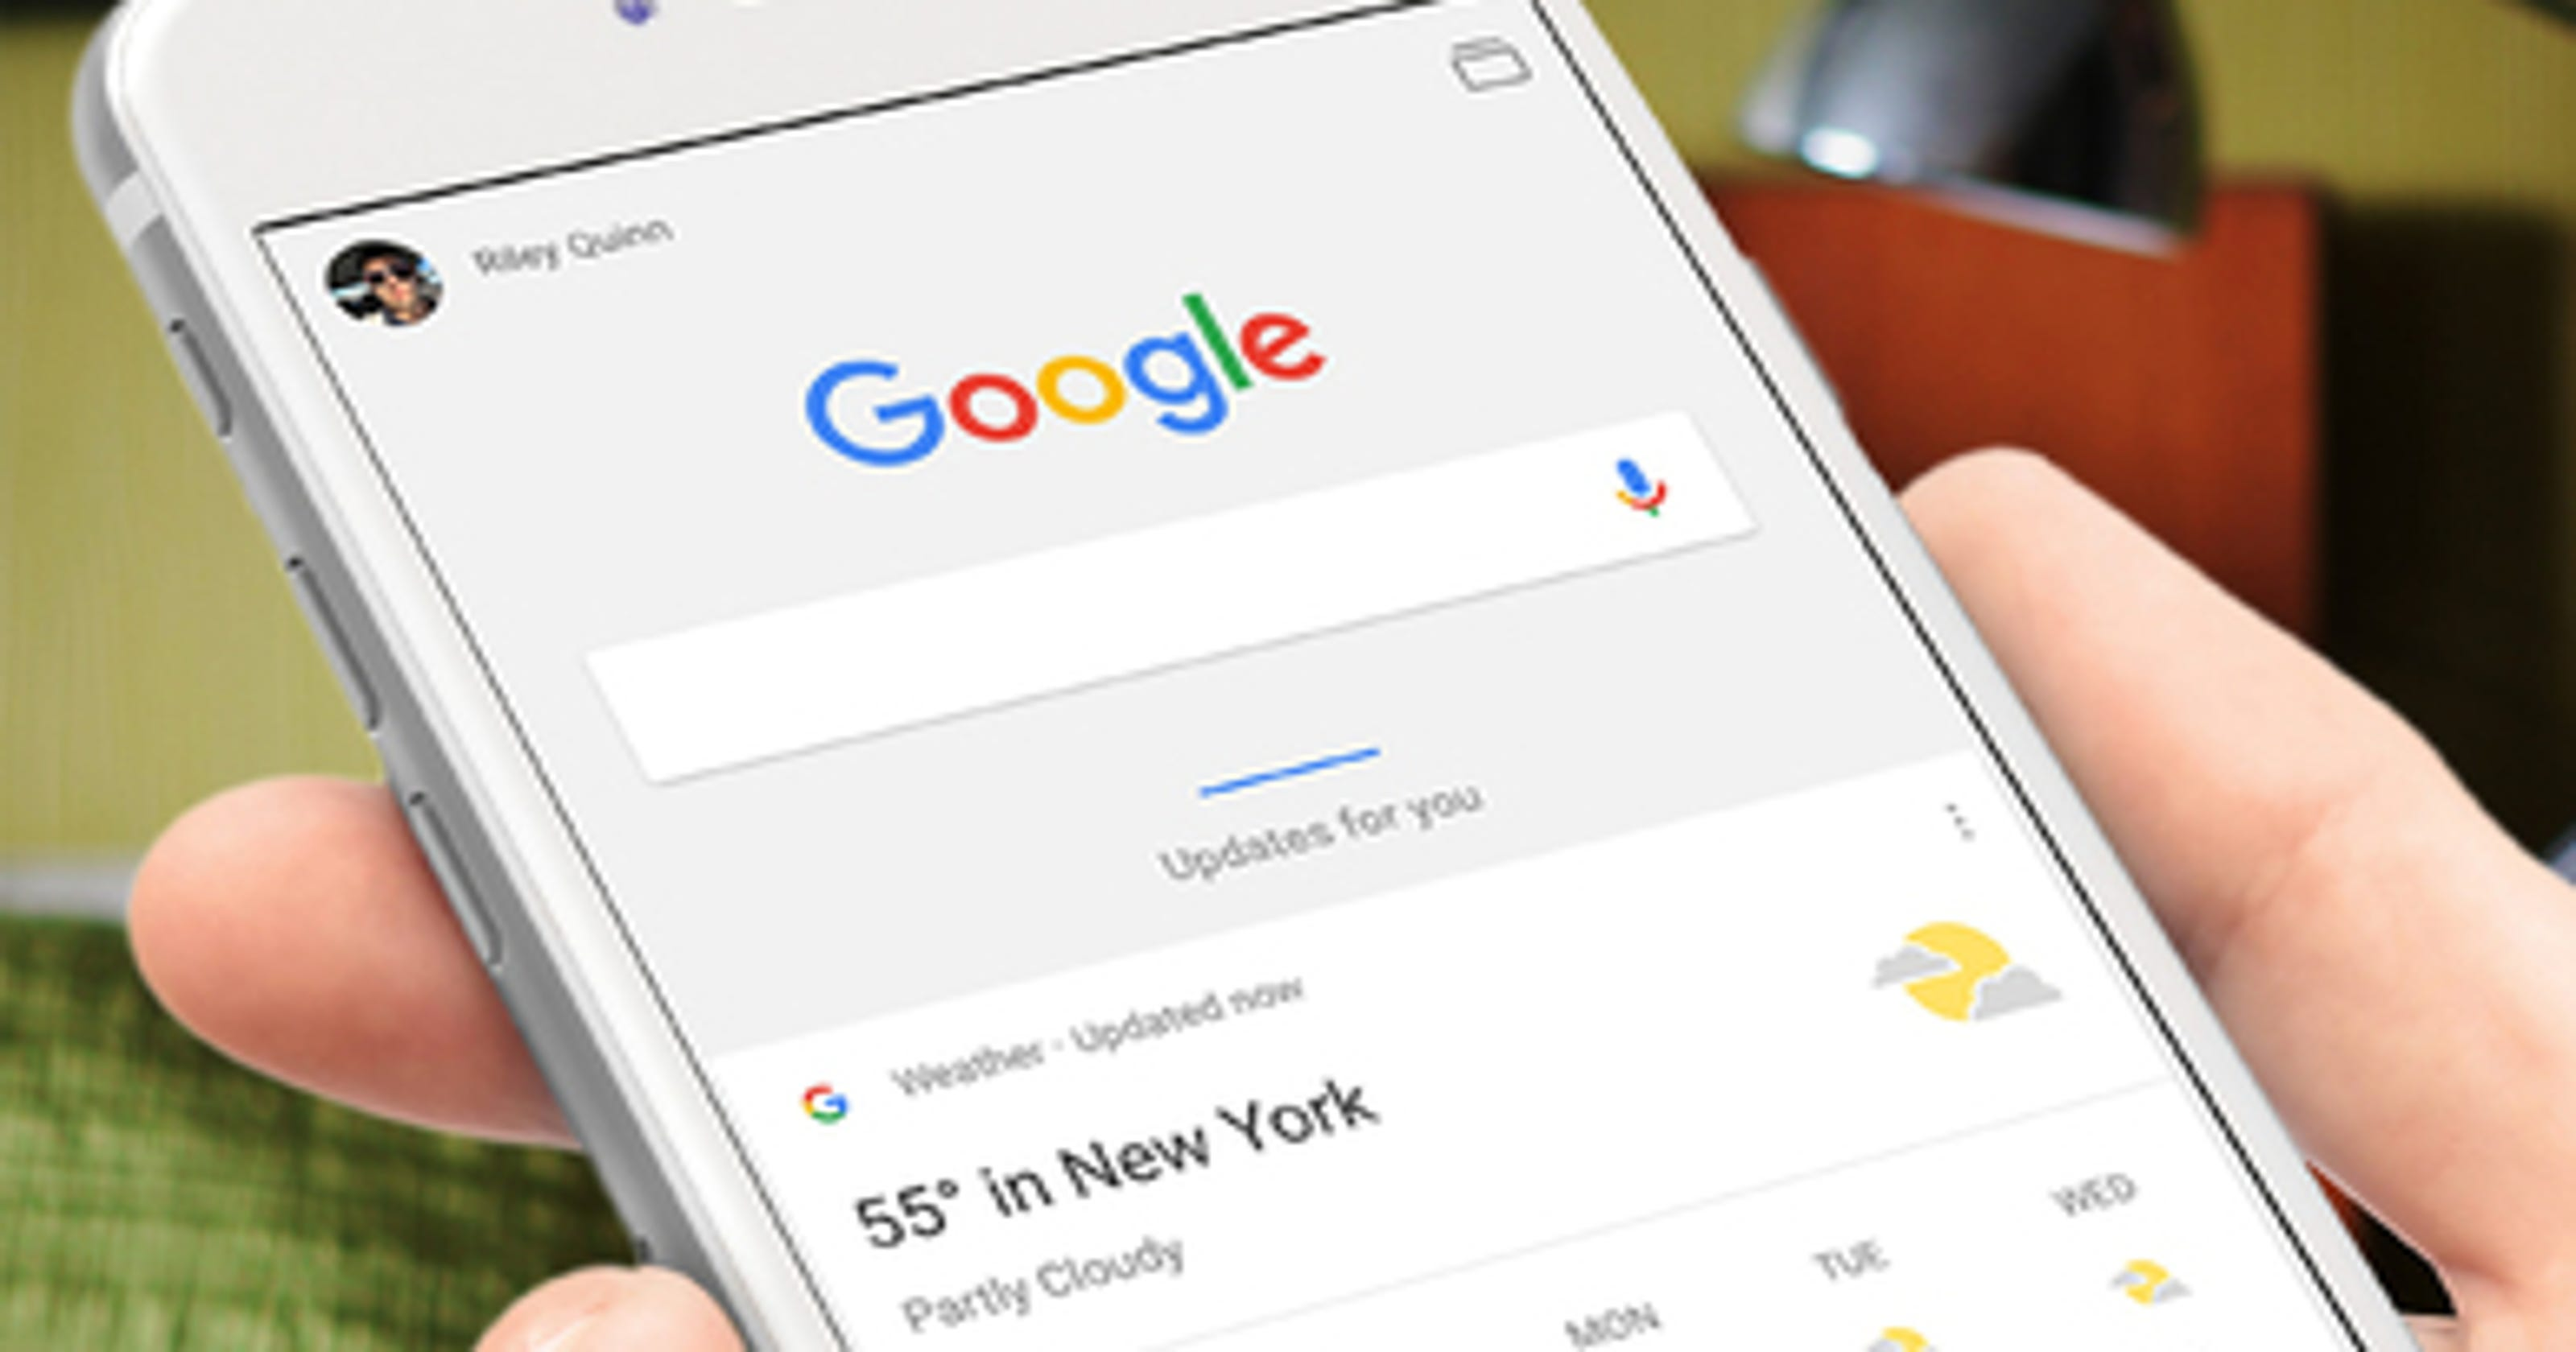 How To View Your Google Search History